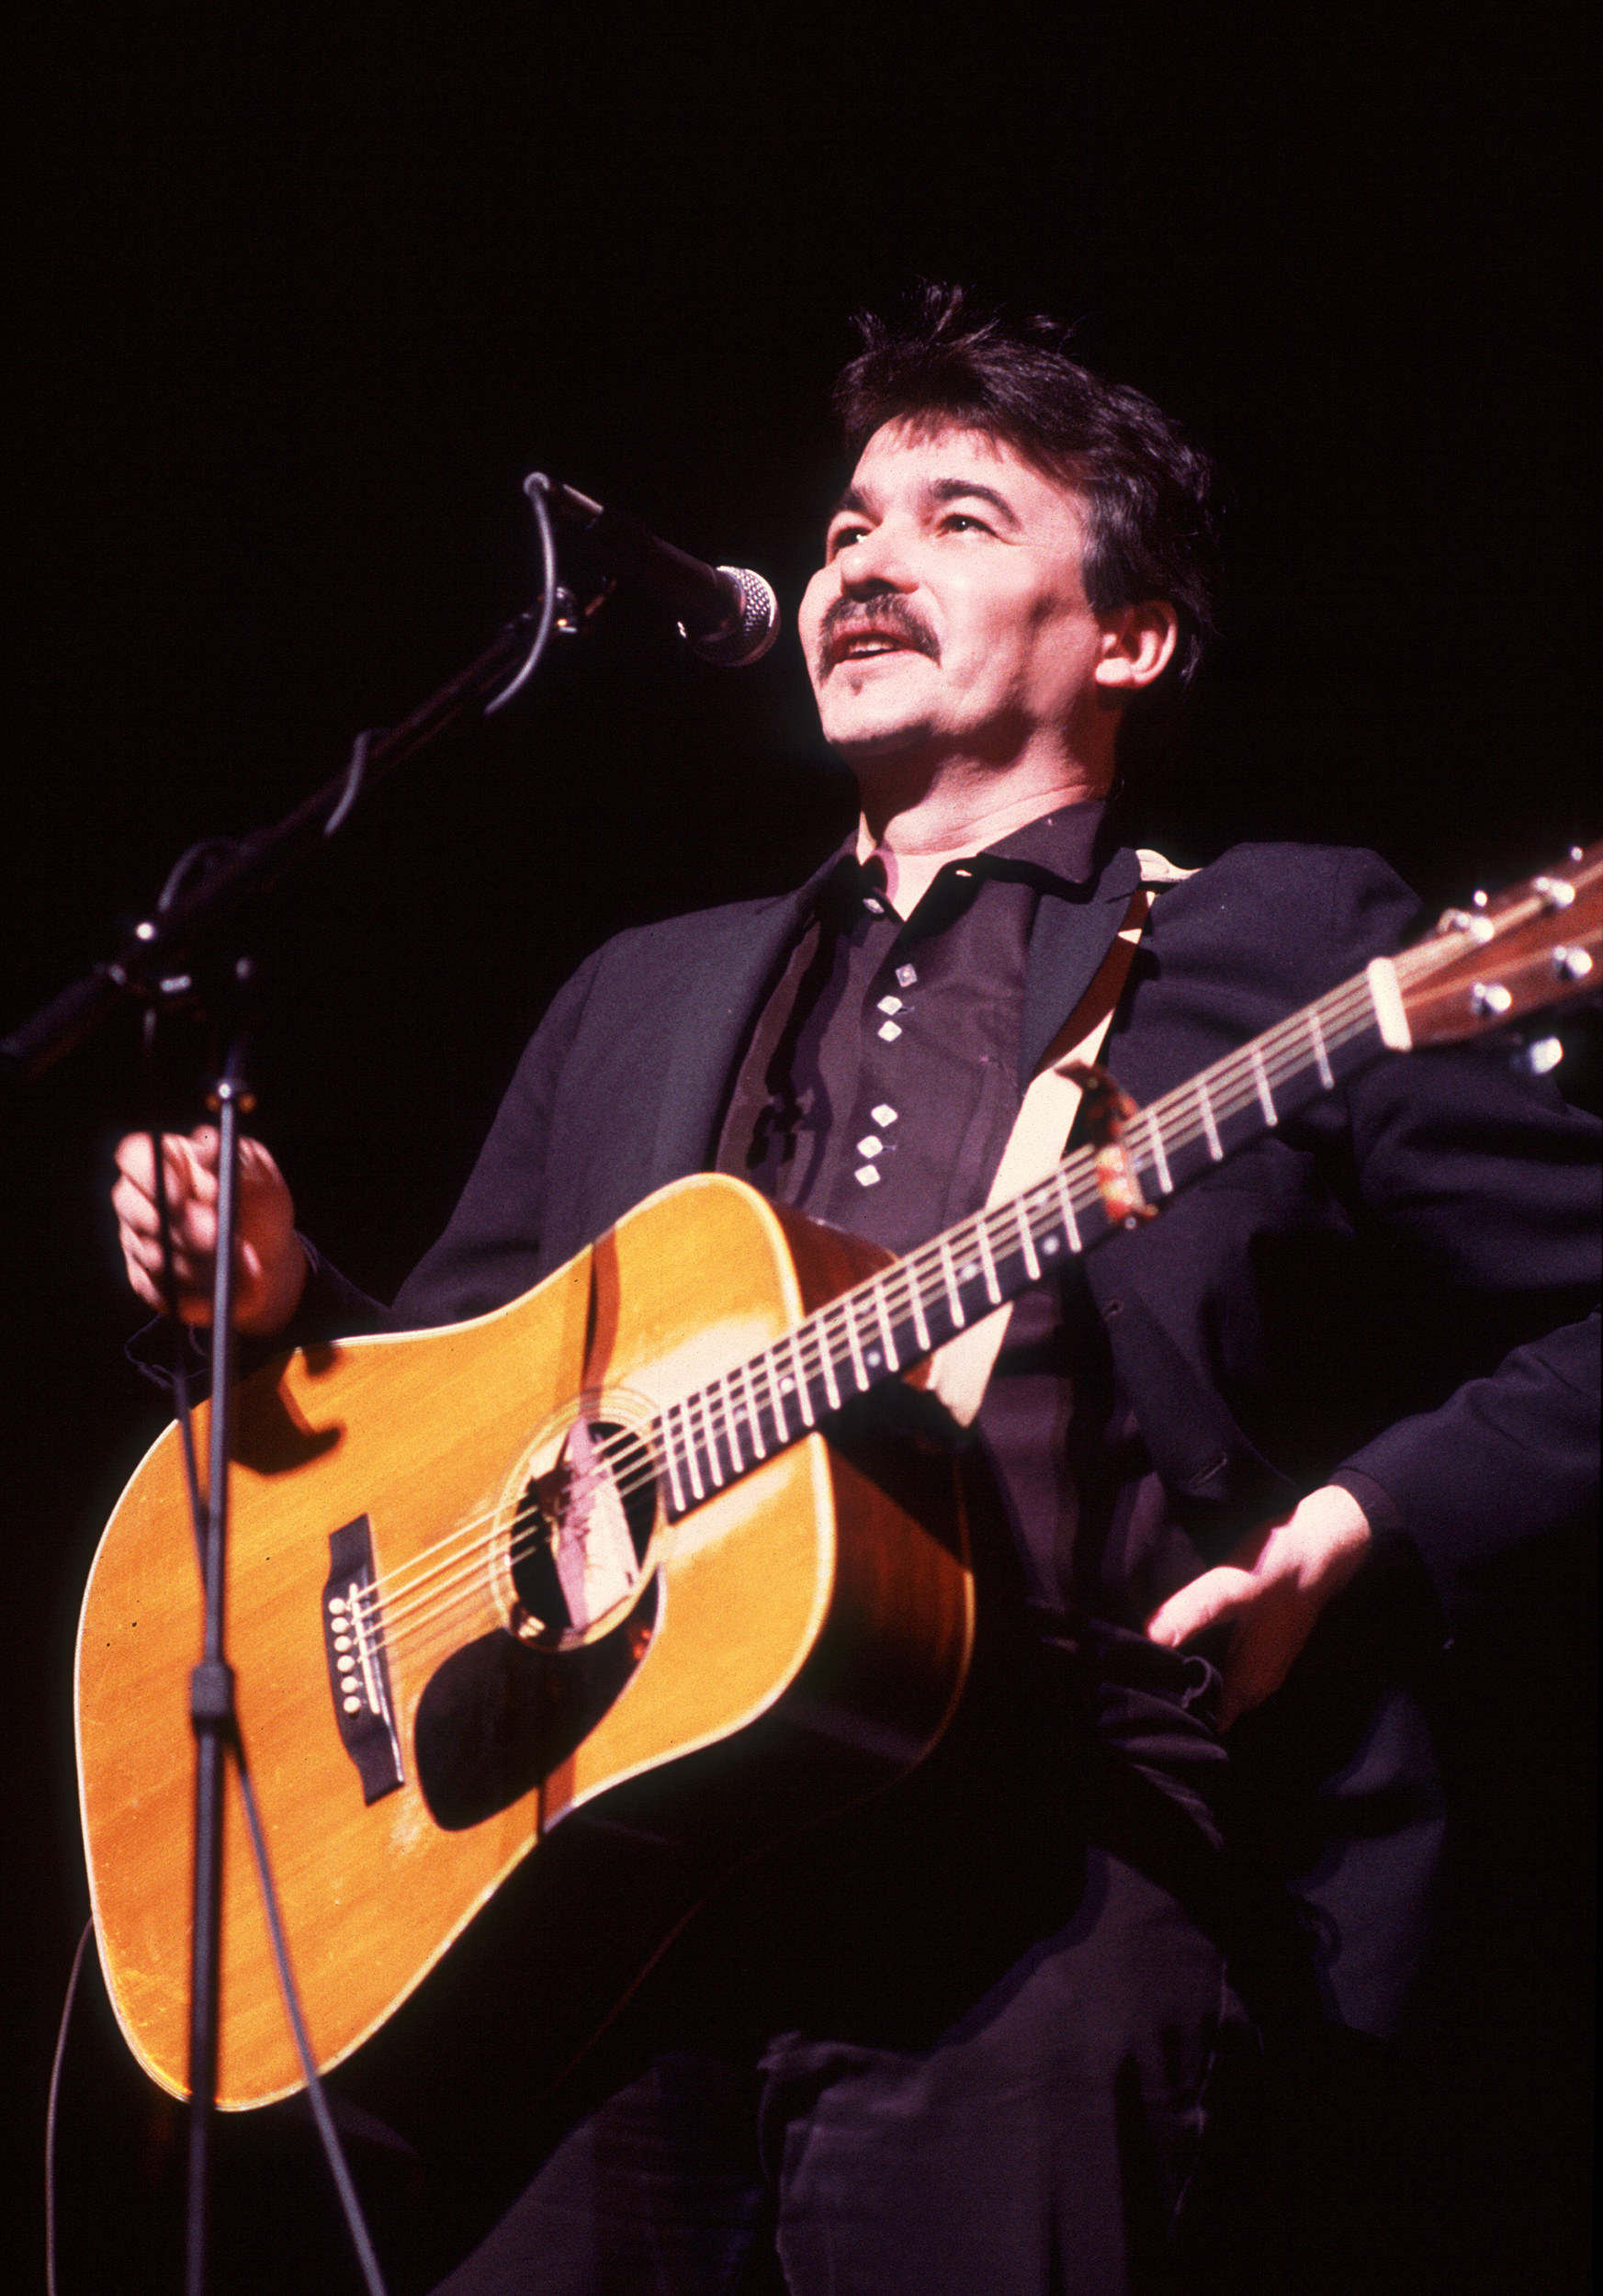 Prine on stage with bright lights on him holding a guitar